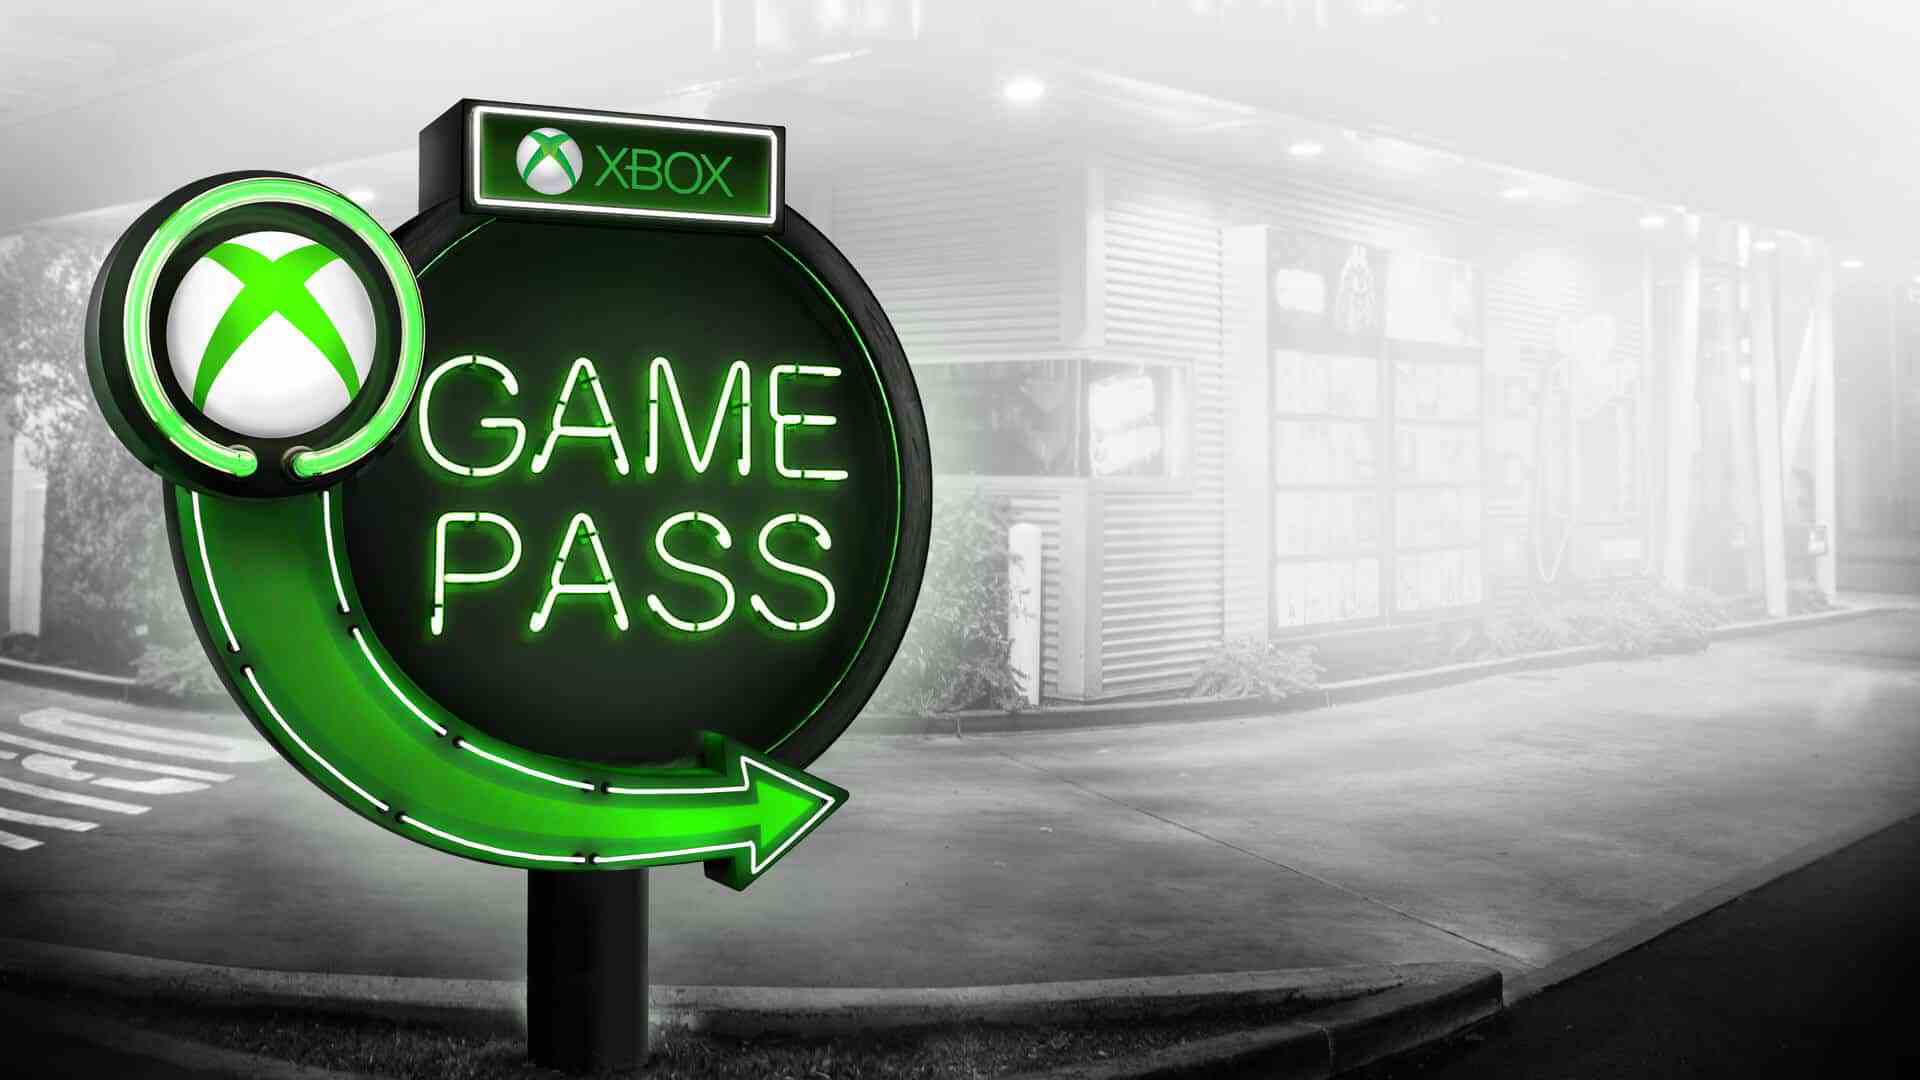 Xbox Game Pass for PC's Beta Period is Ending, Subscription Price Going Up